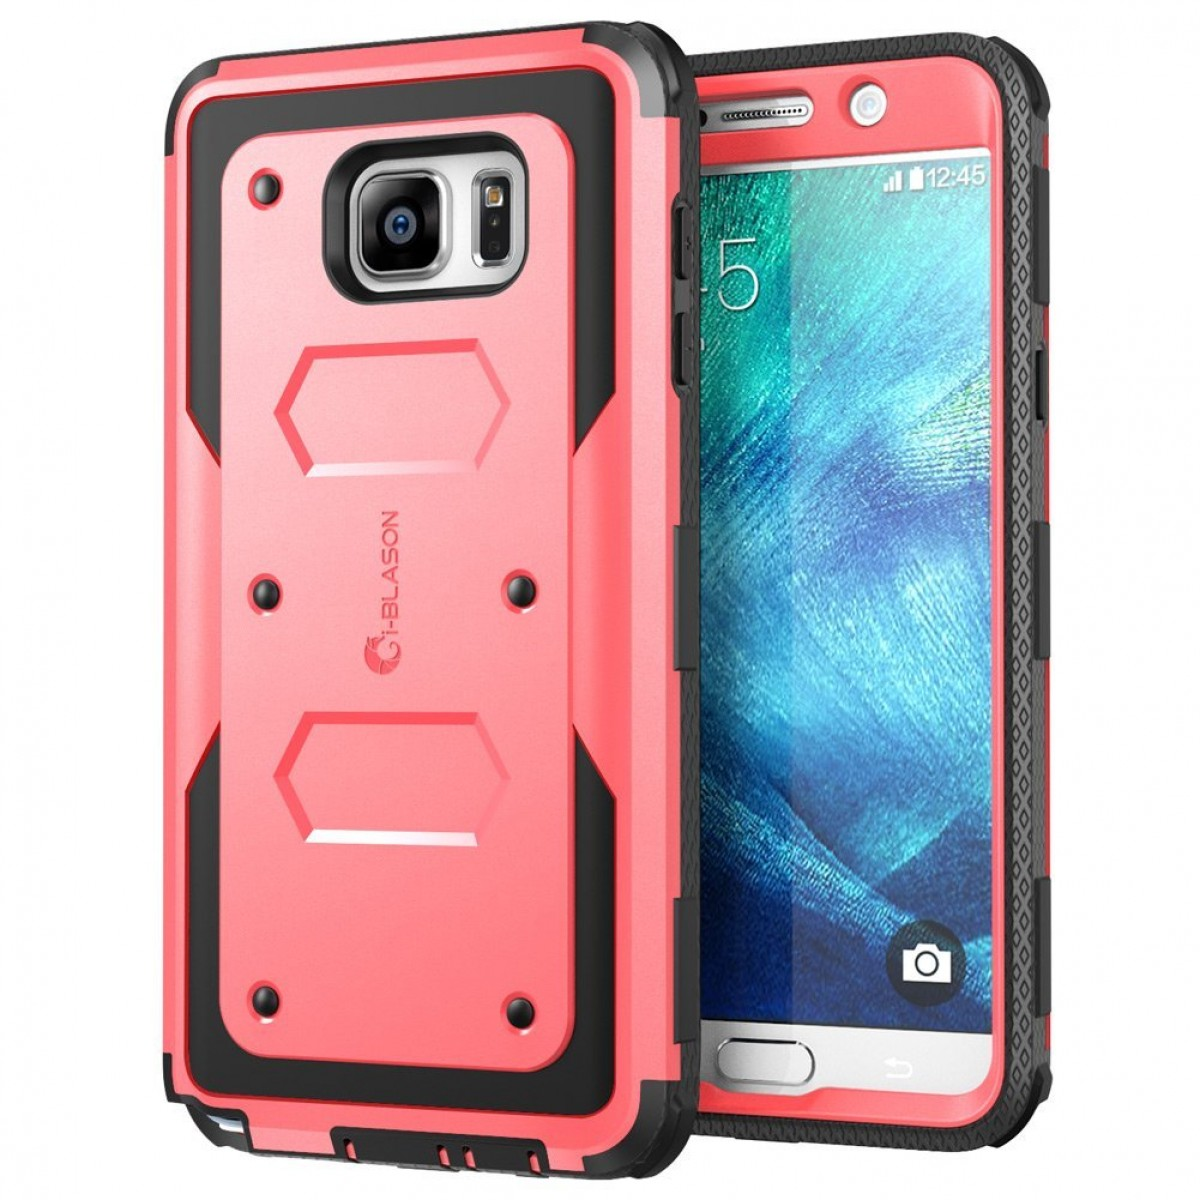 buy online 0ec05 4a4b2 Galaxy Note 5 Case, i-Blason Armorbox Dual Layer Hybrid Full-body  Protective Case For Samsung Galaxy Note 5 with Front Cover and Built-in  Screen ...